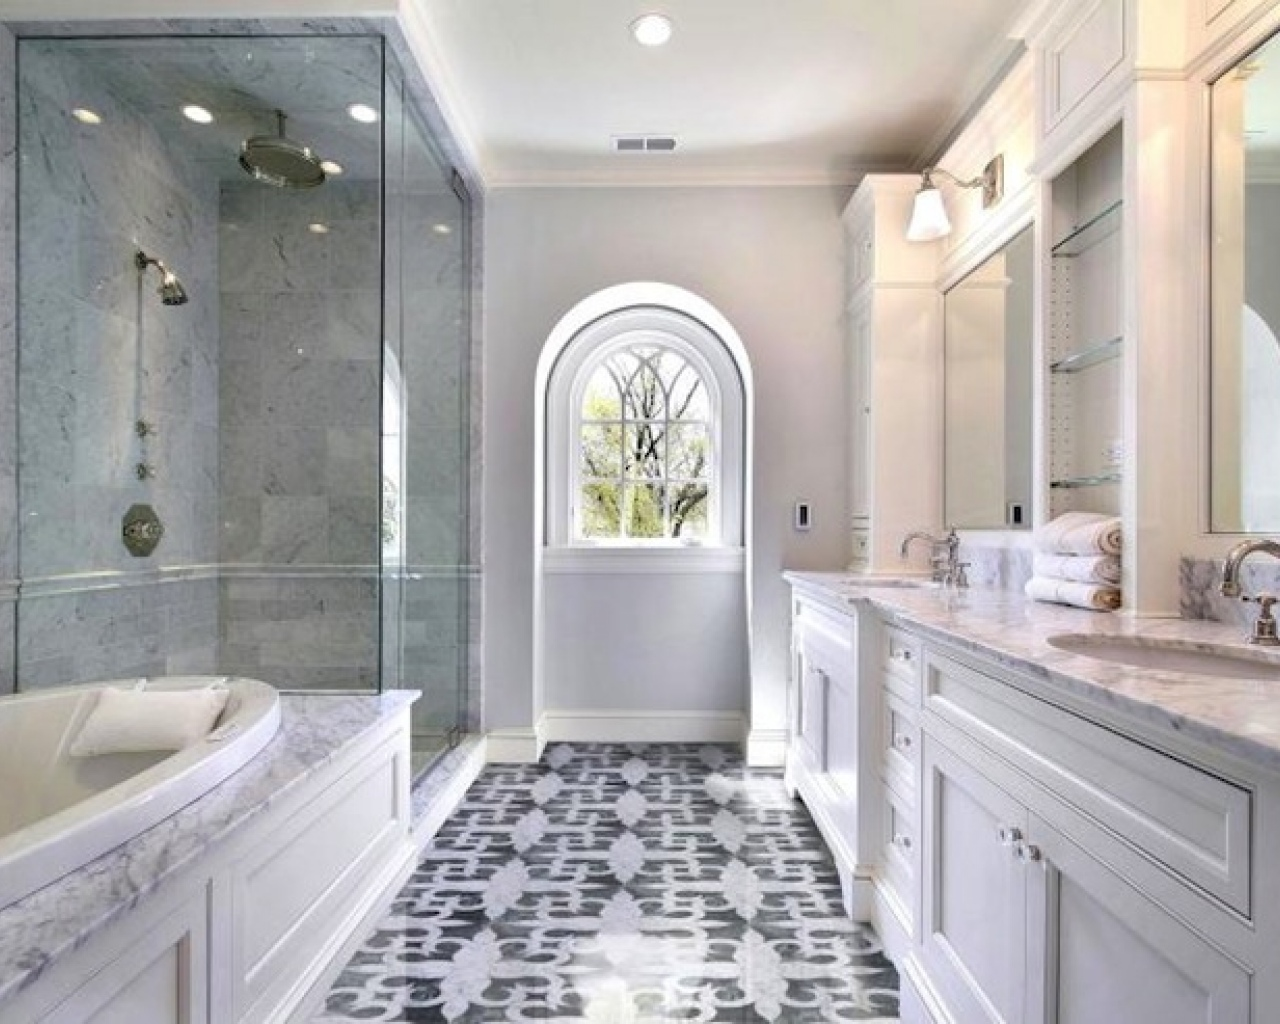 25 amazing italian bathroom tile designs ideas and pictures for Bathroom floor tile ideas